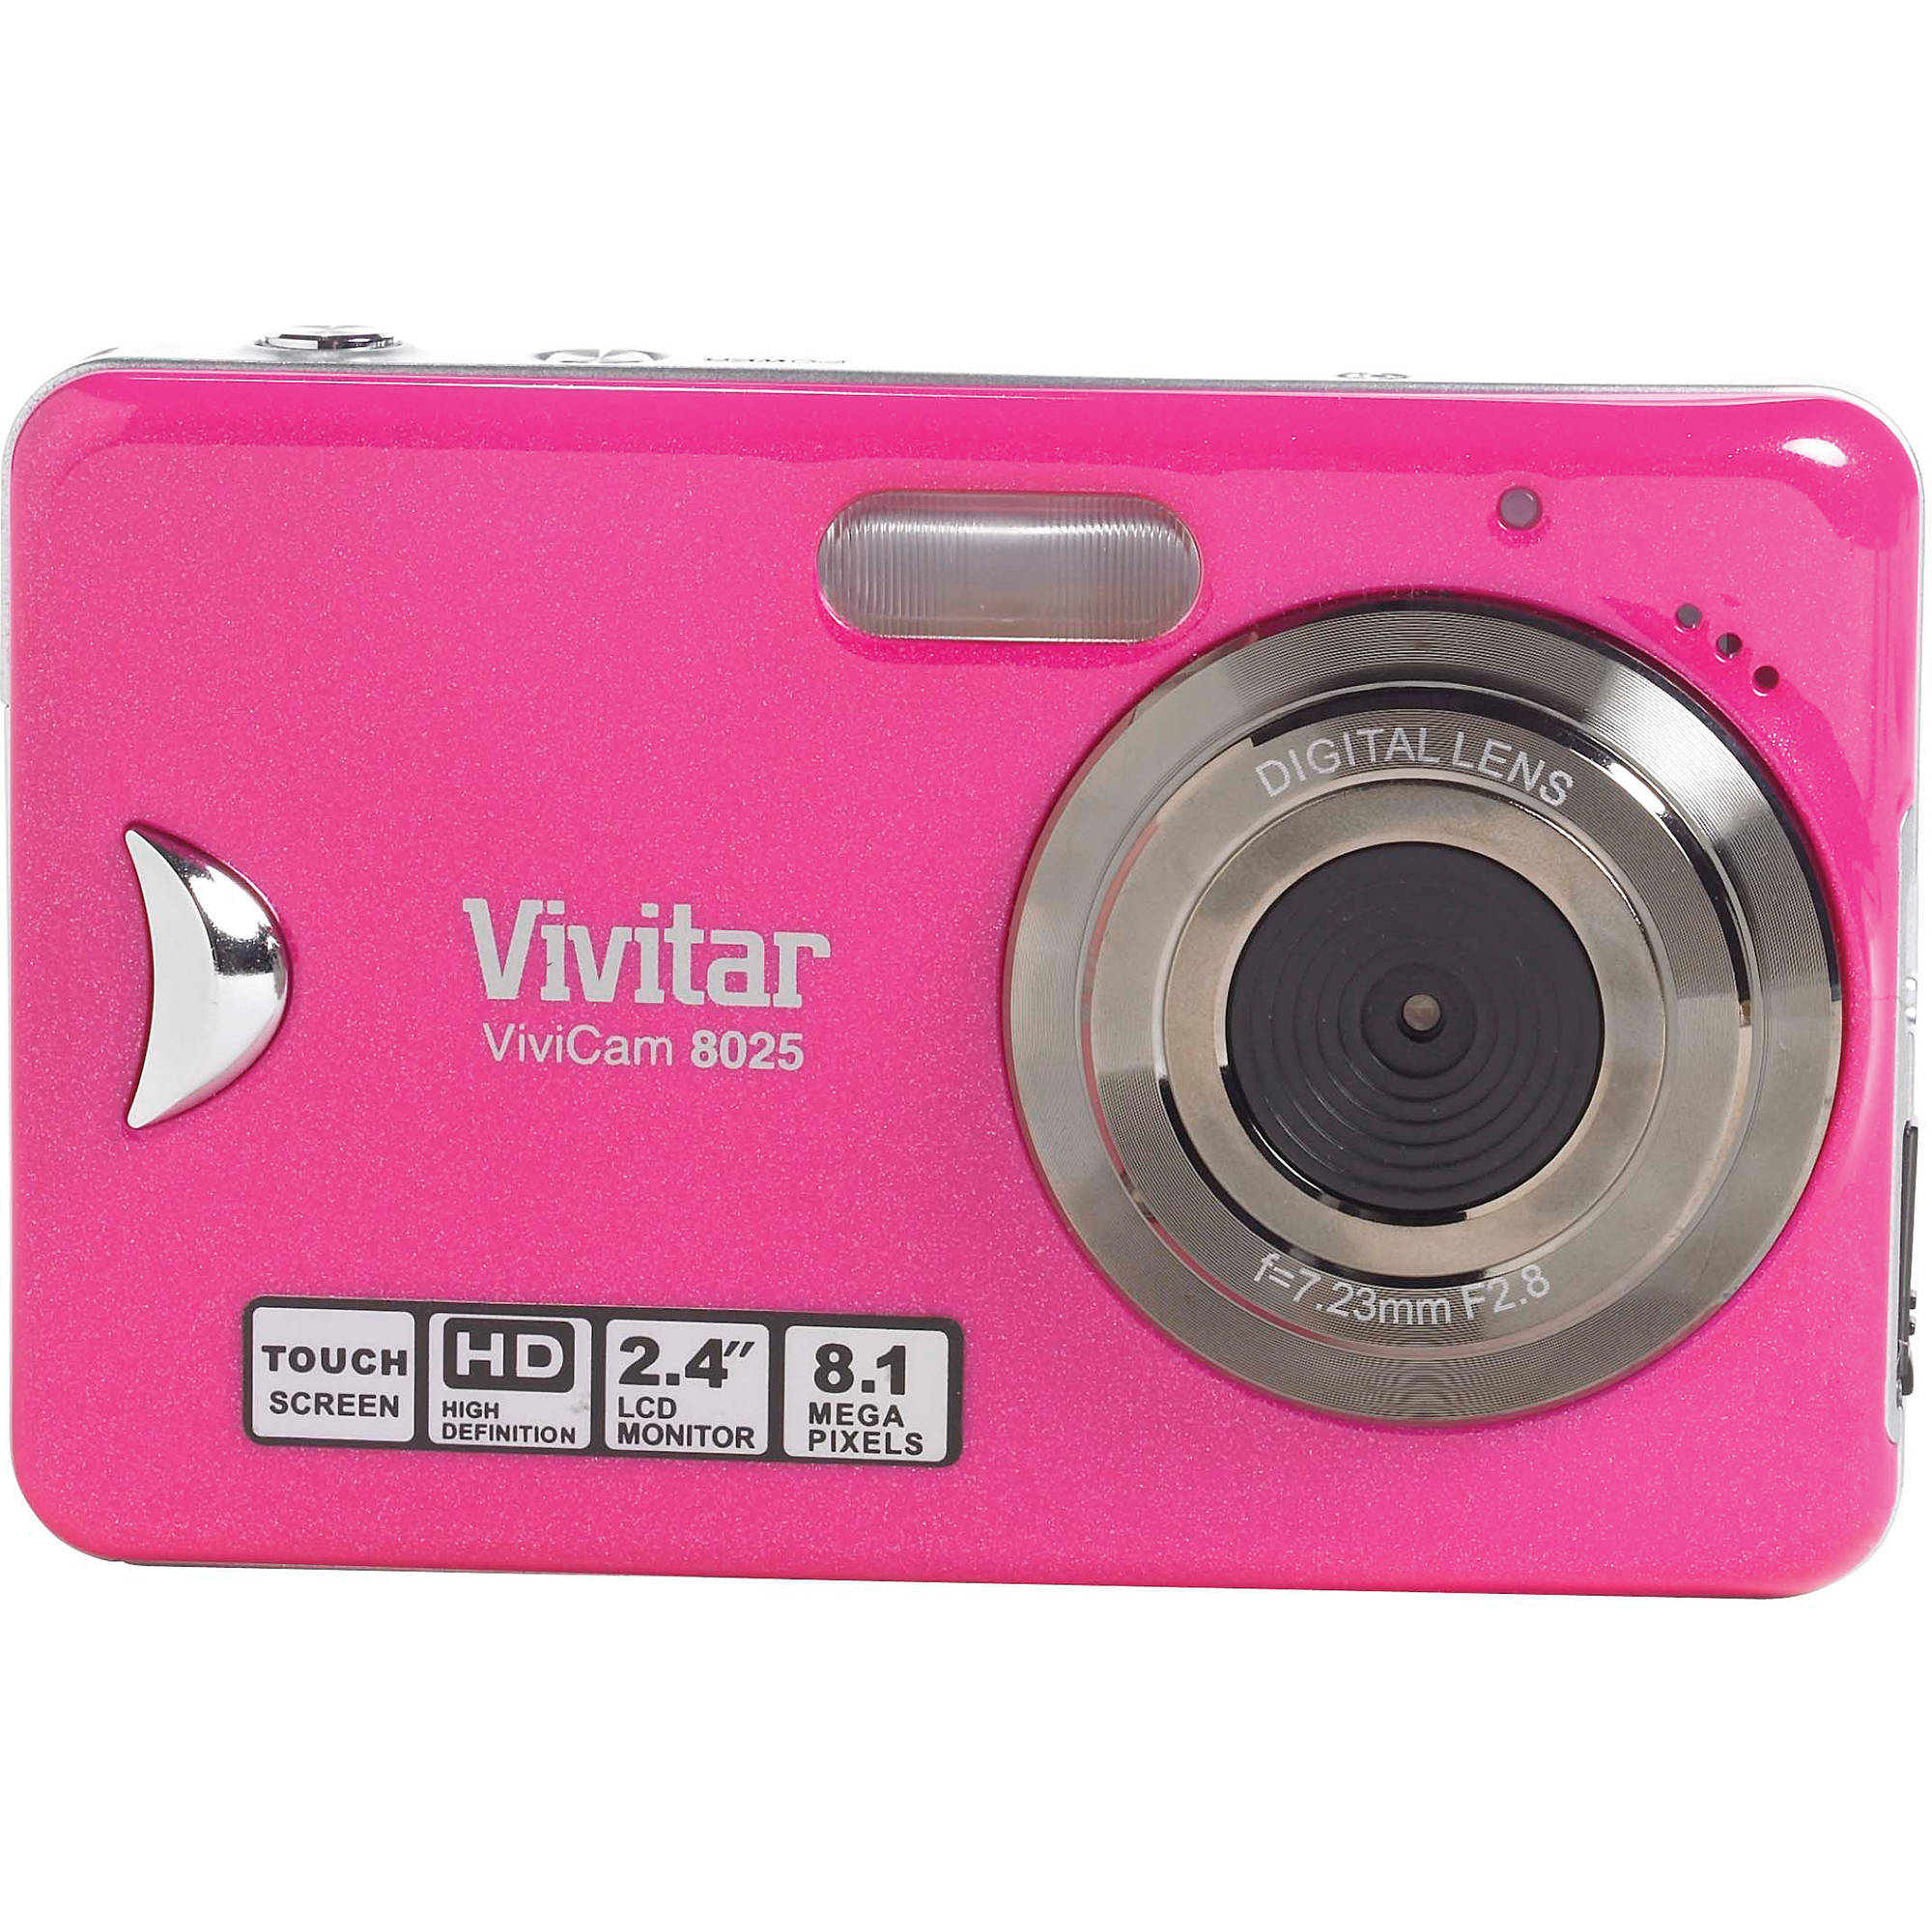 vivitar vivicam 8025 point and shoot digital camera v8025 pink rh bhphotovideo com